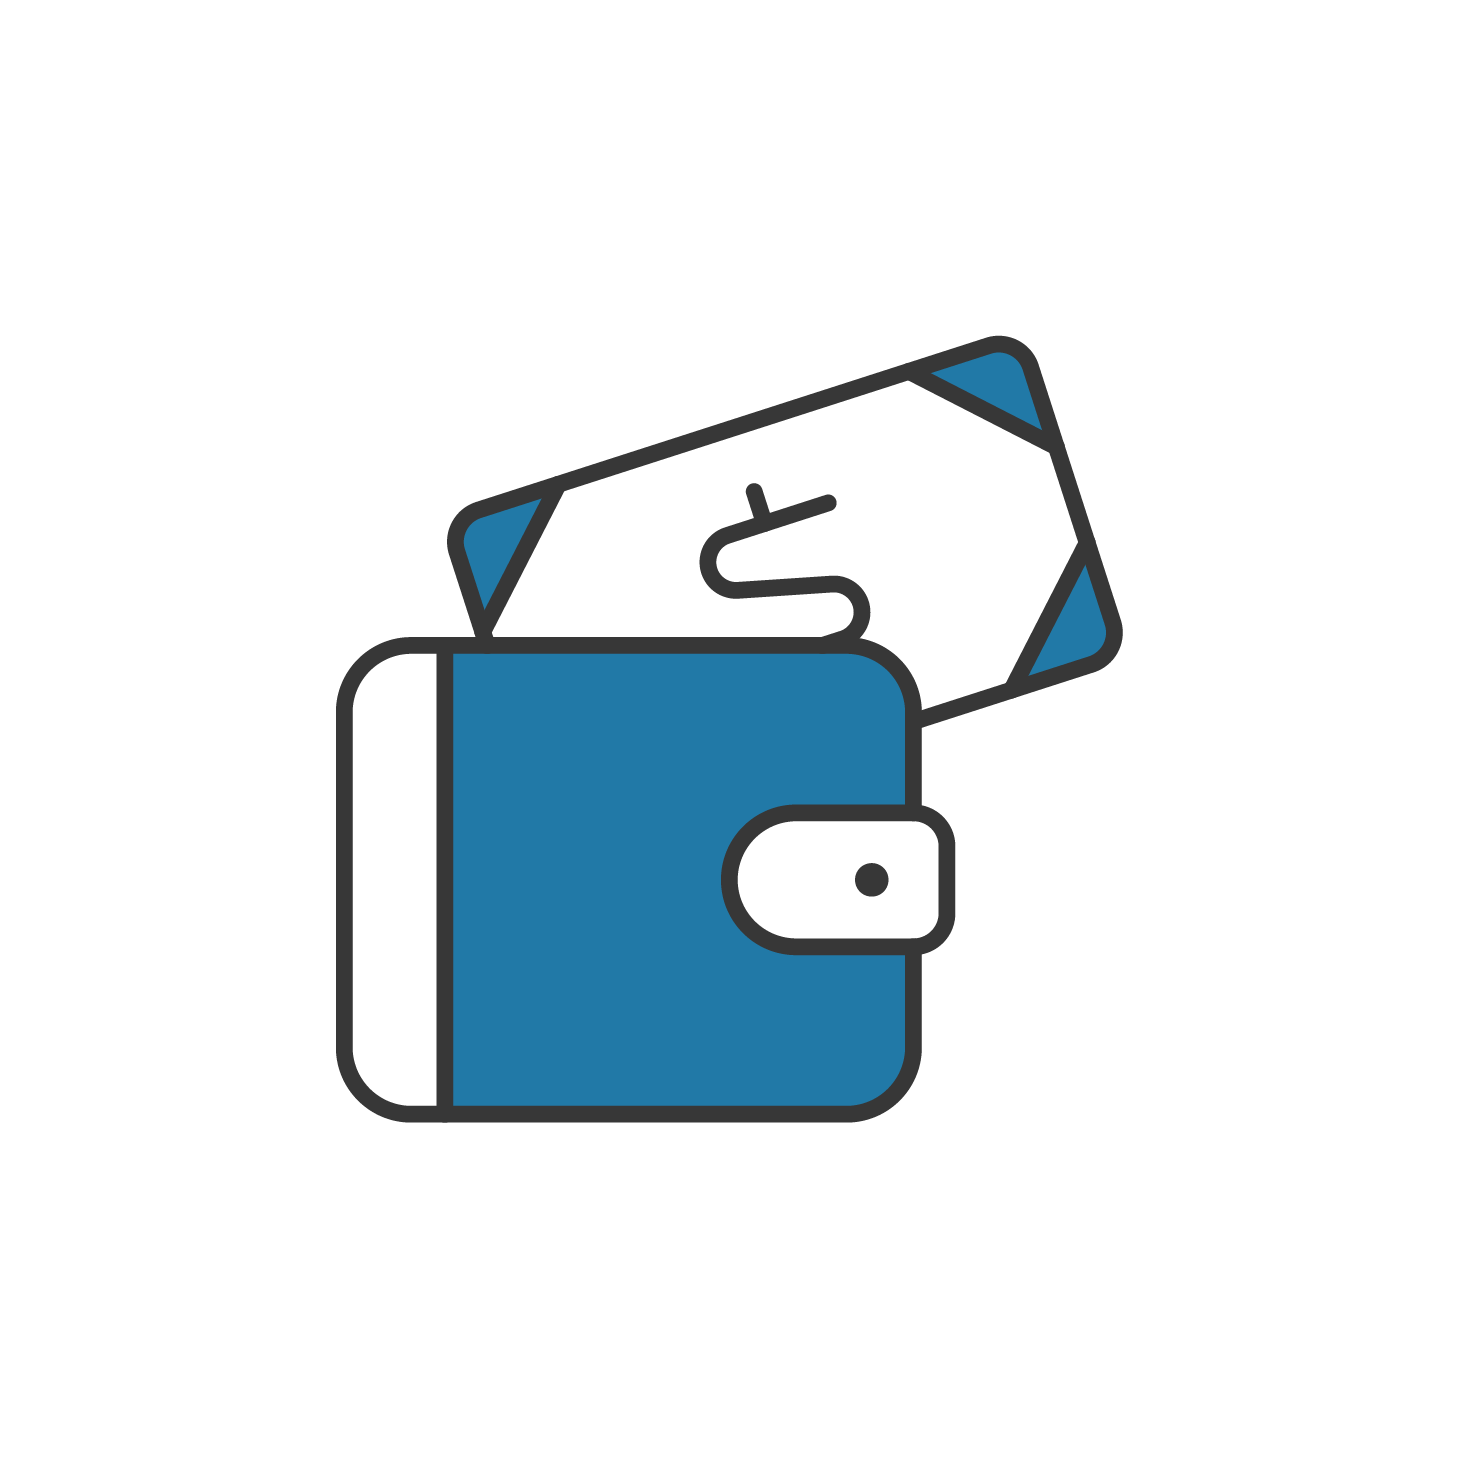 Pay a bill icon